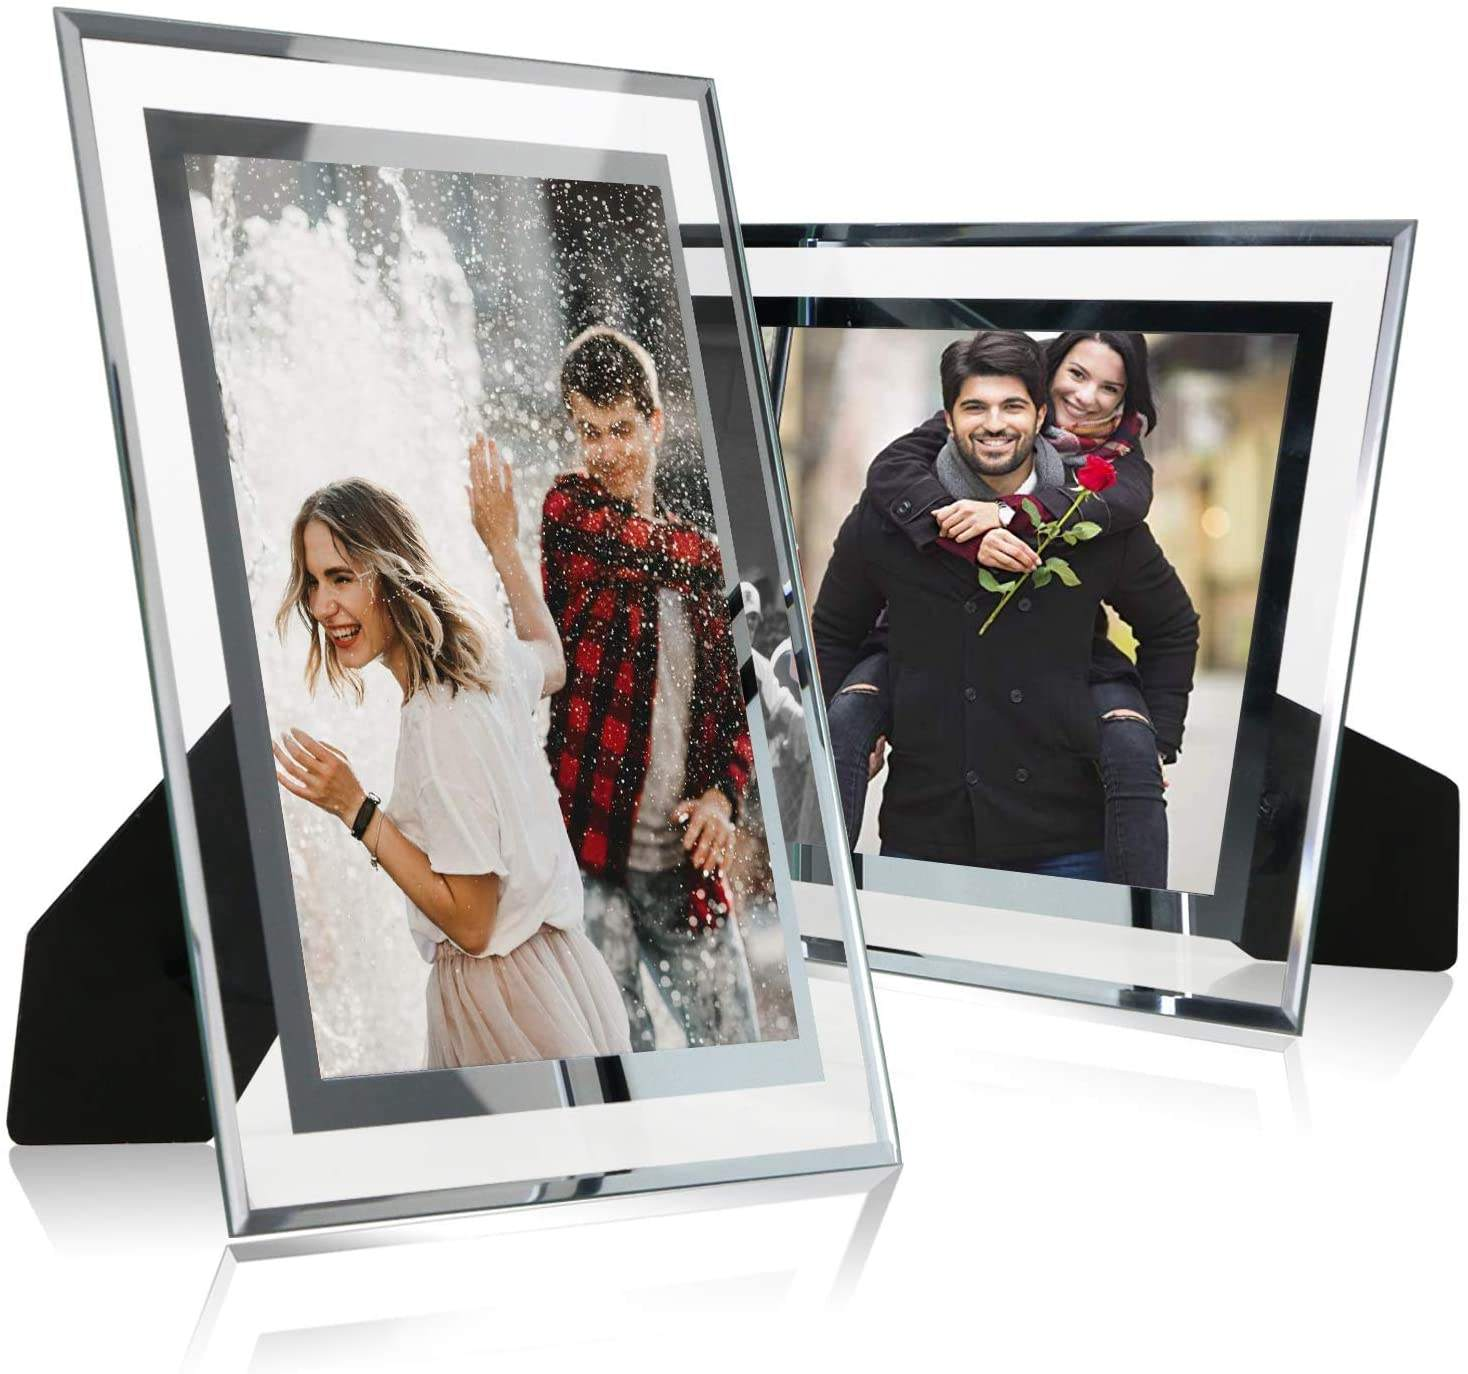 Groothandel Uitstekende Kwaliteit <span class=keywords><strong>4X6</strong></span> 5X7 Inch <span class=keywords><strong>Acryl</strong></span> Fotolijst Clear Frame Glazen Tafel Foto Frame Voor home Decor